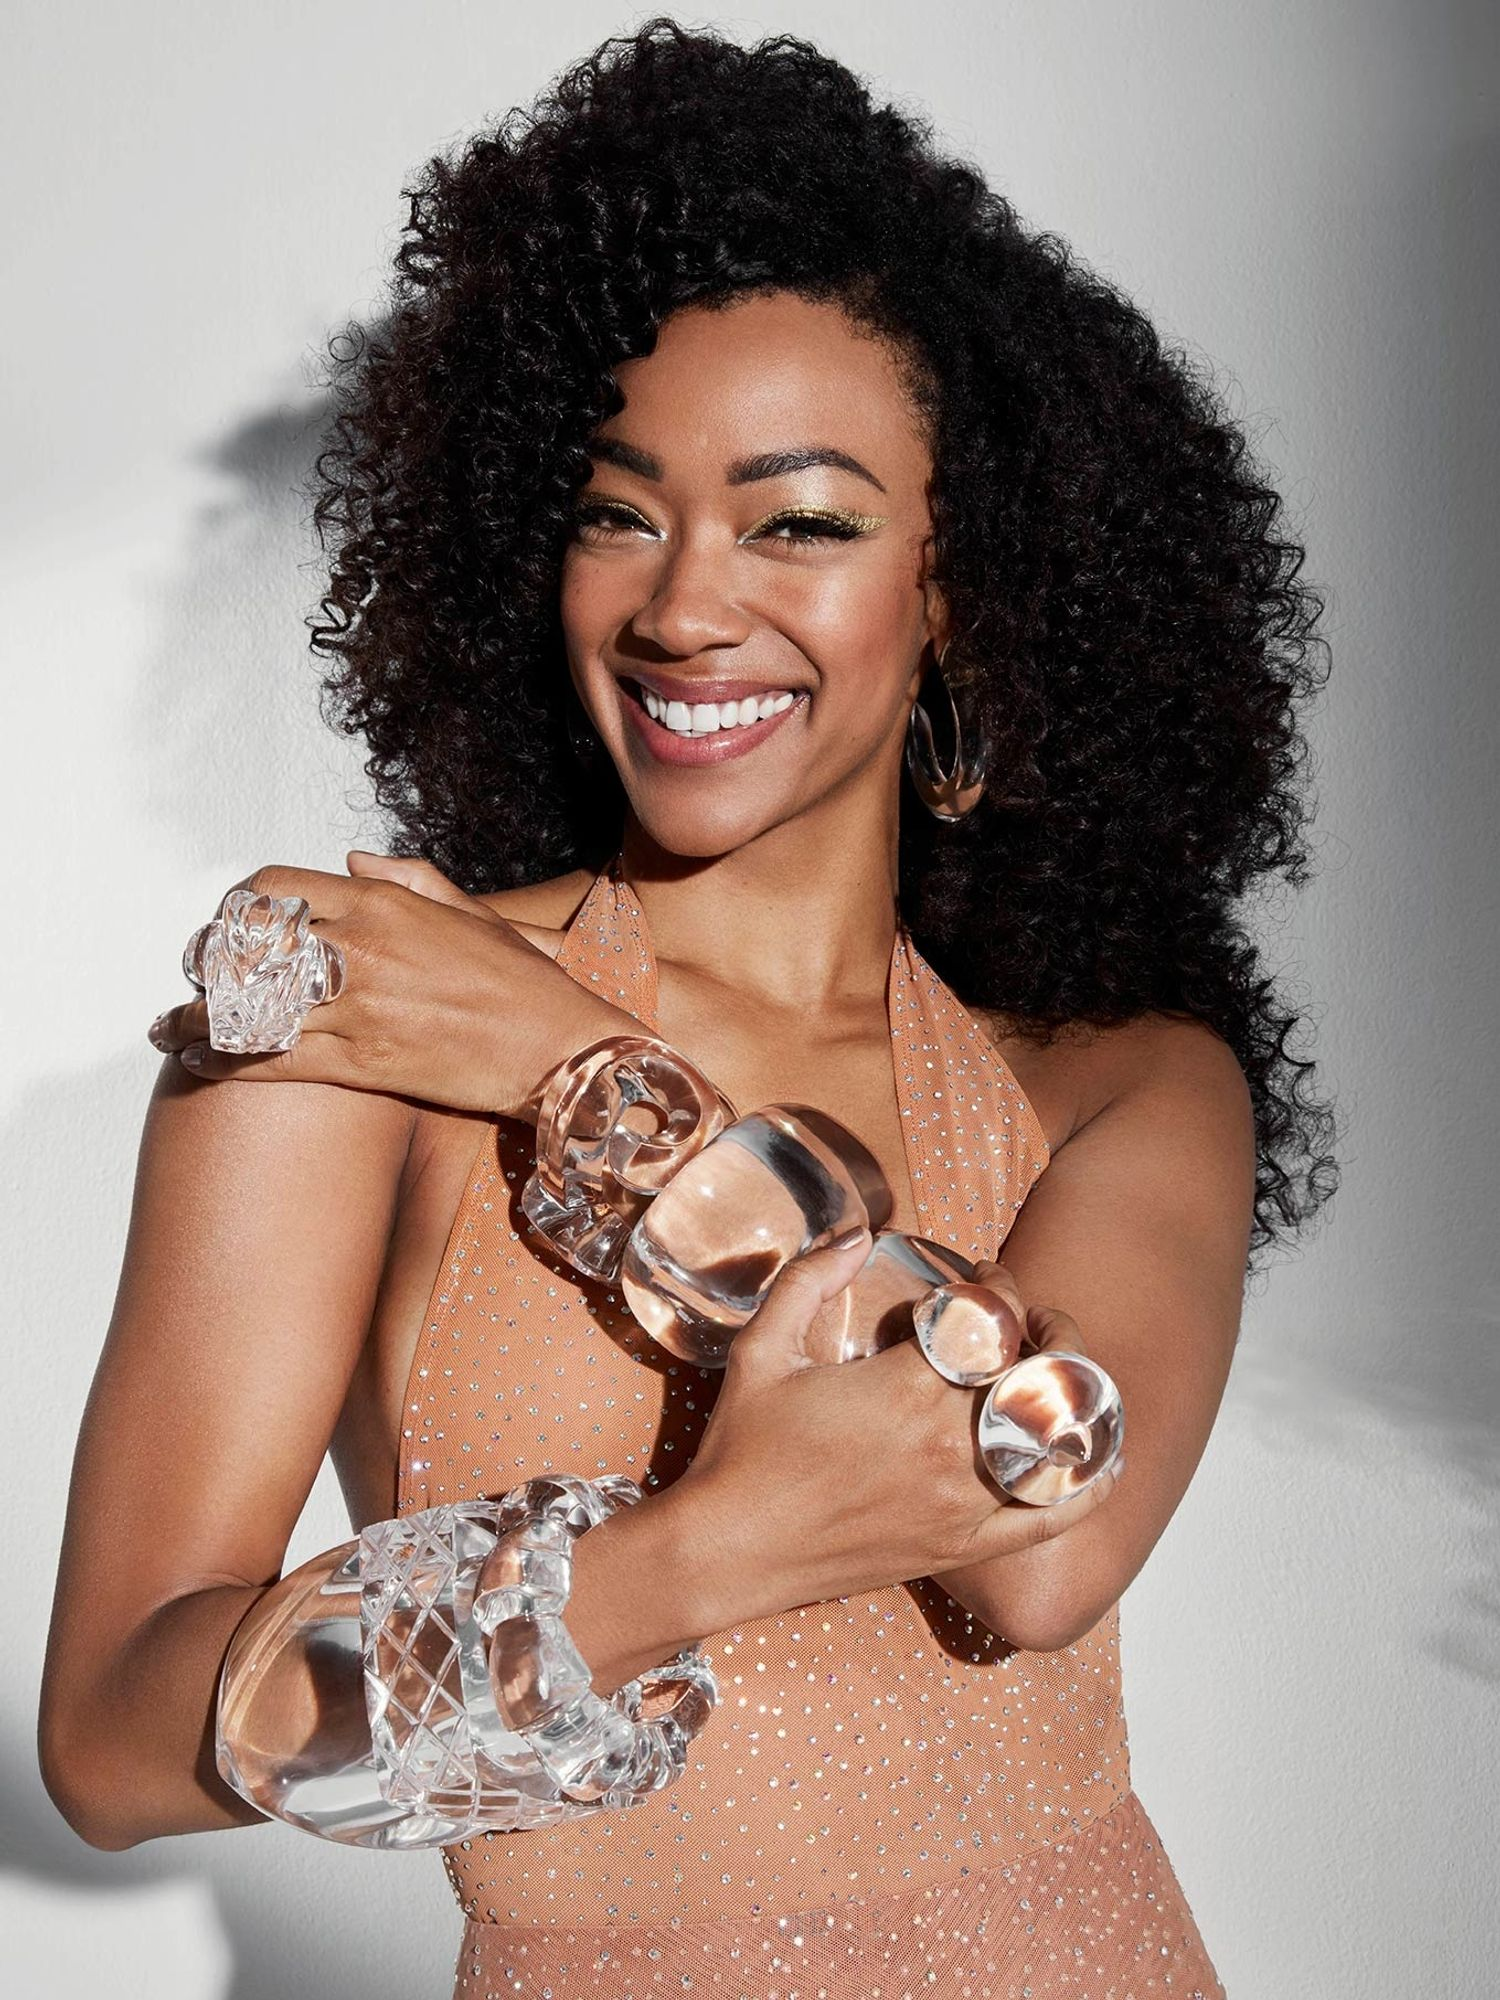 Sonequa Martin-Green smiling wearing lots of clear baubles.